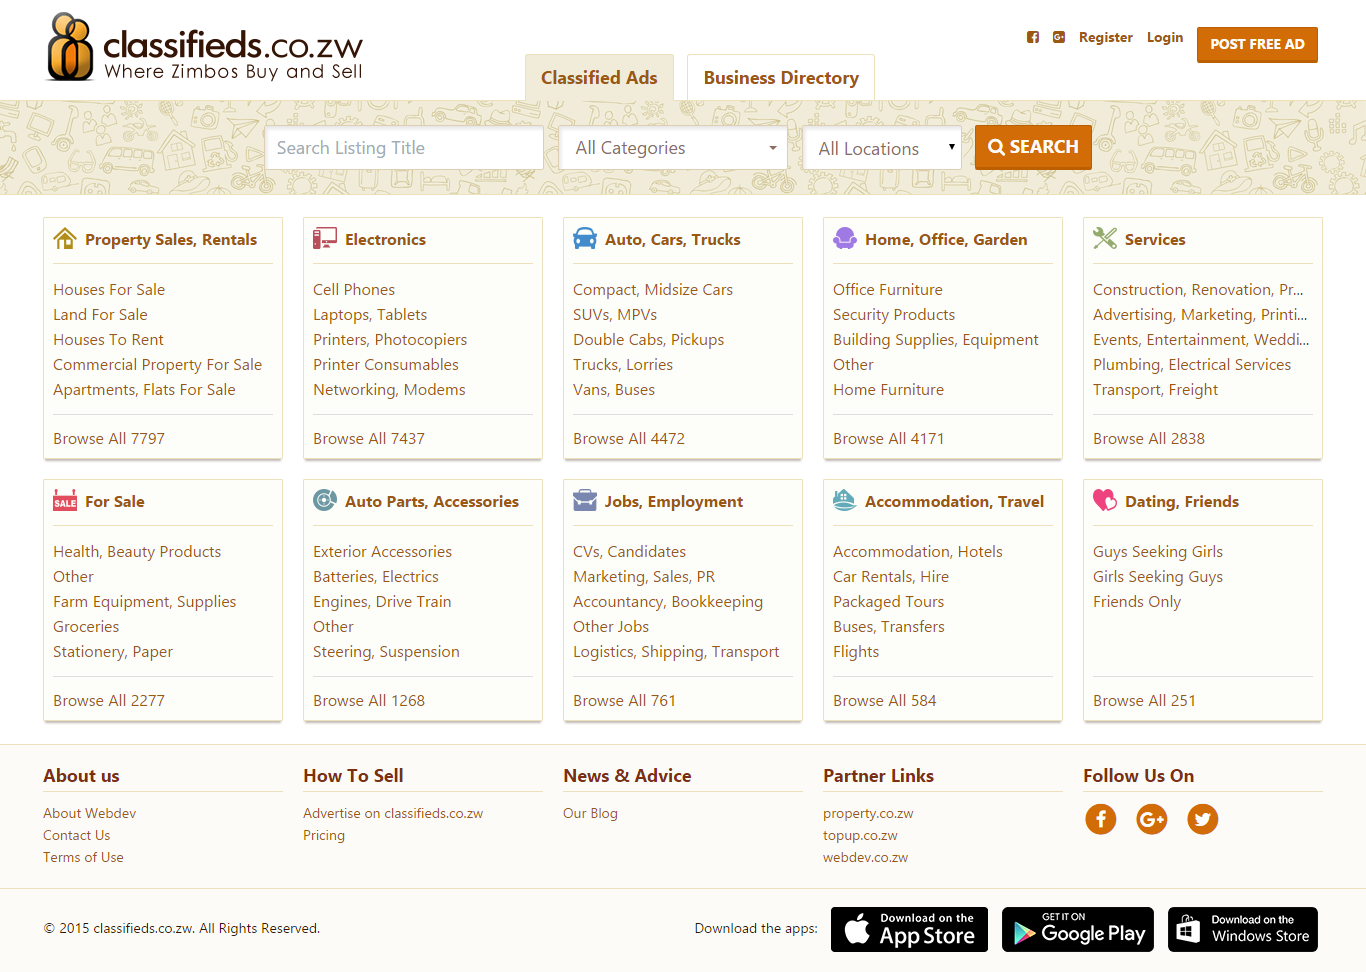 Classifieds co zw launches business directory, along with